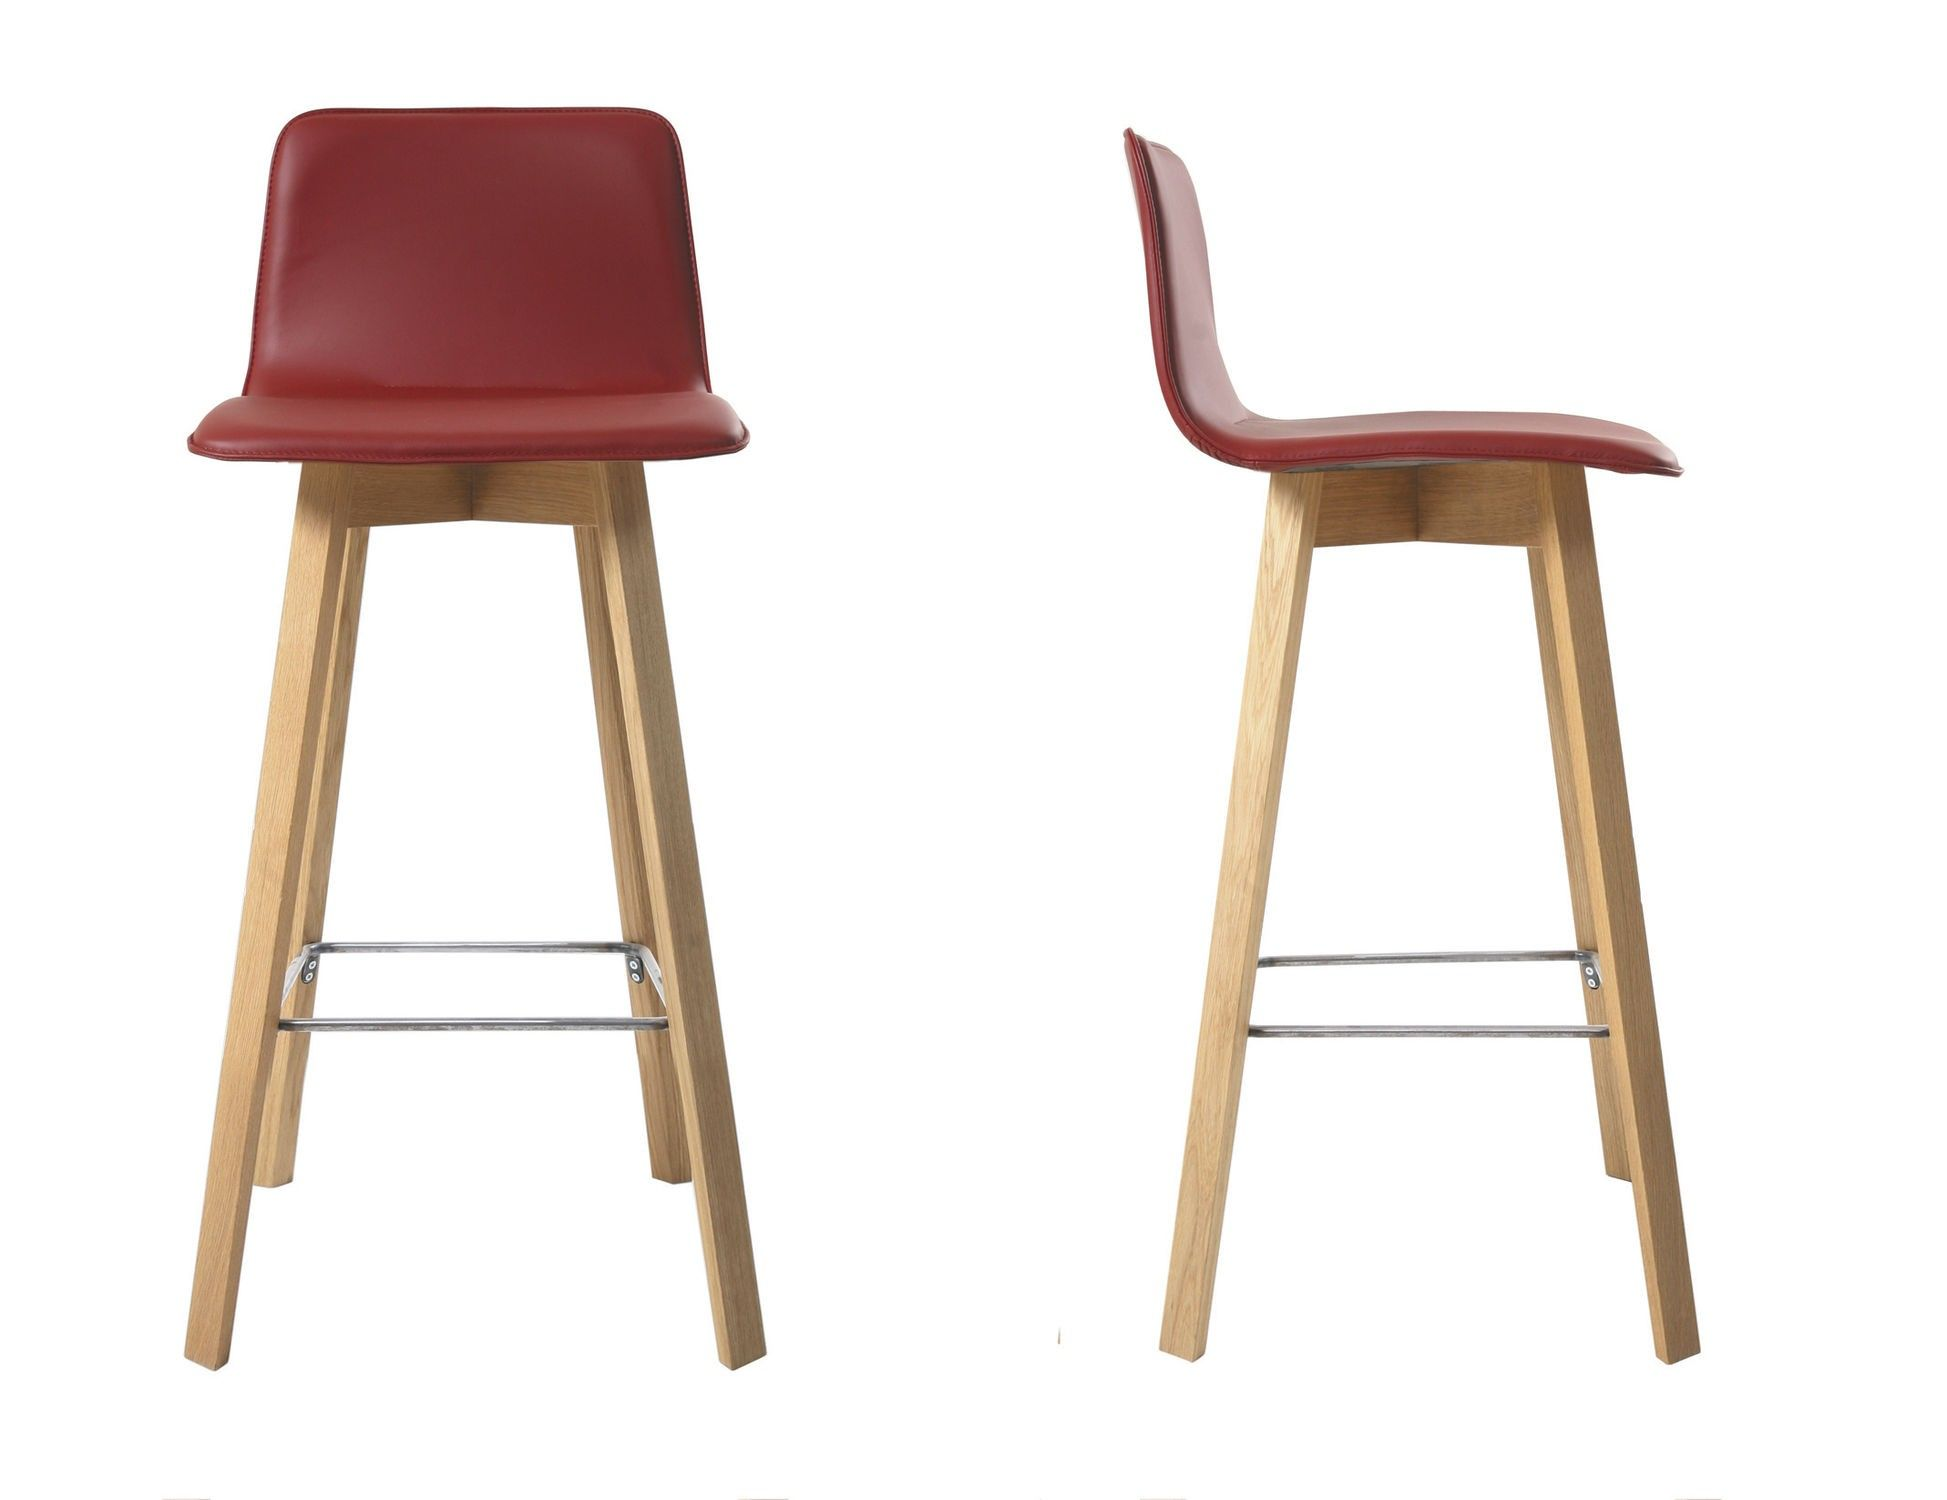 Modern Wood Bar Stool Kitchen Stools With Backs Contemporary Wooden Upholstered